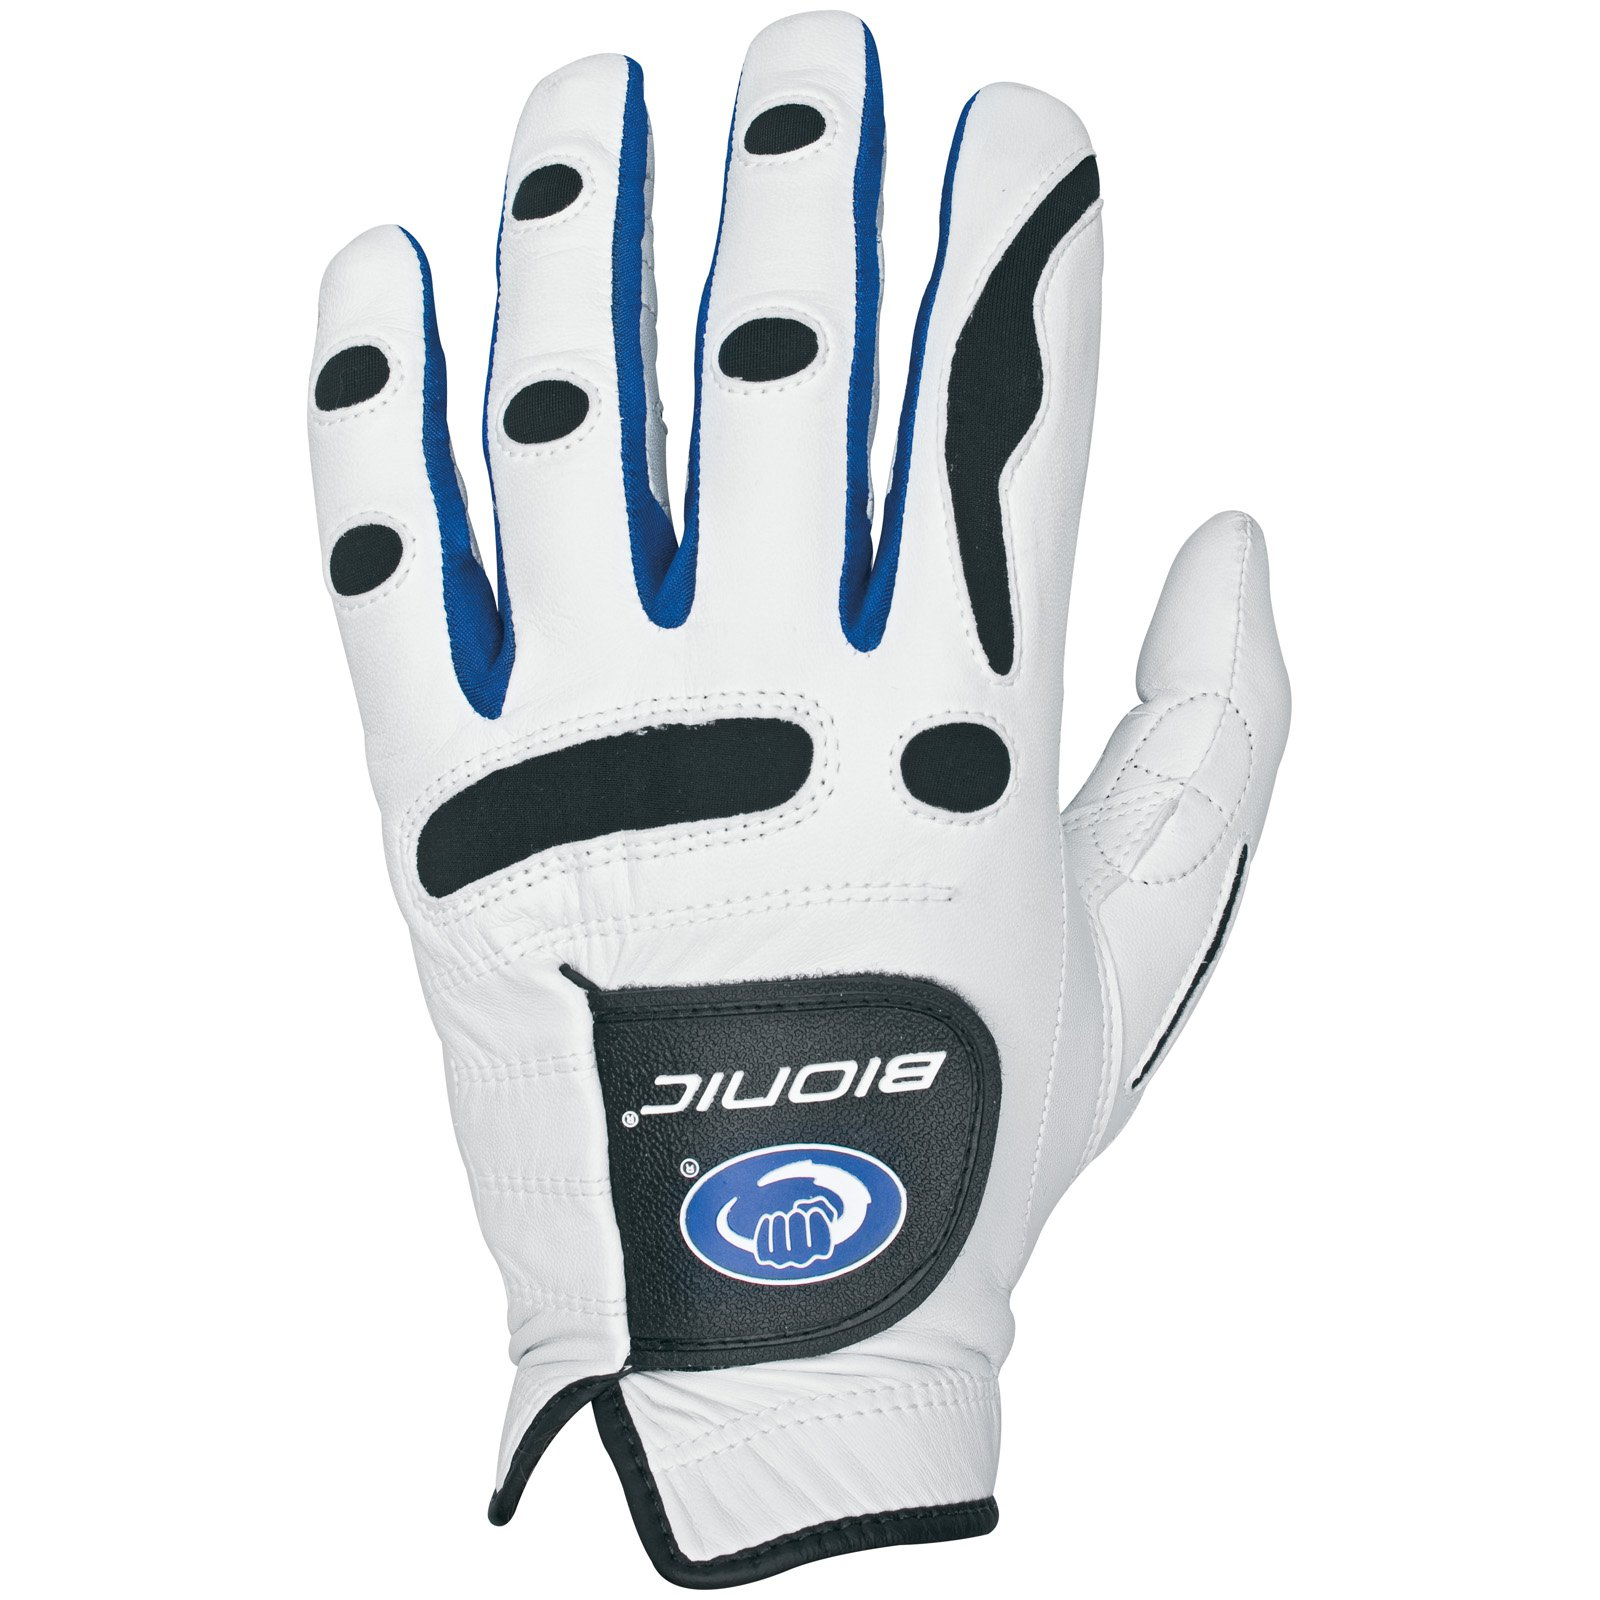 Bionic Men's Left Hand Performance Series Golf Glove